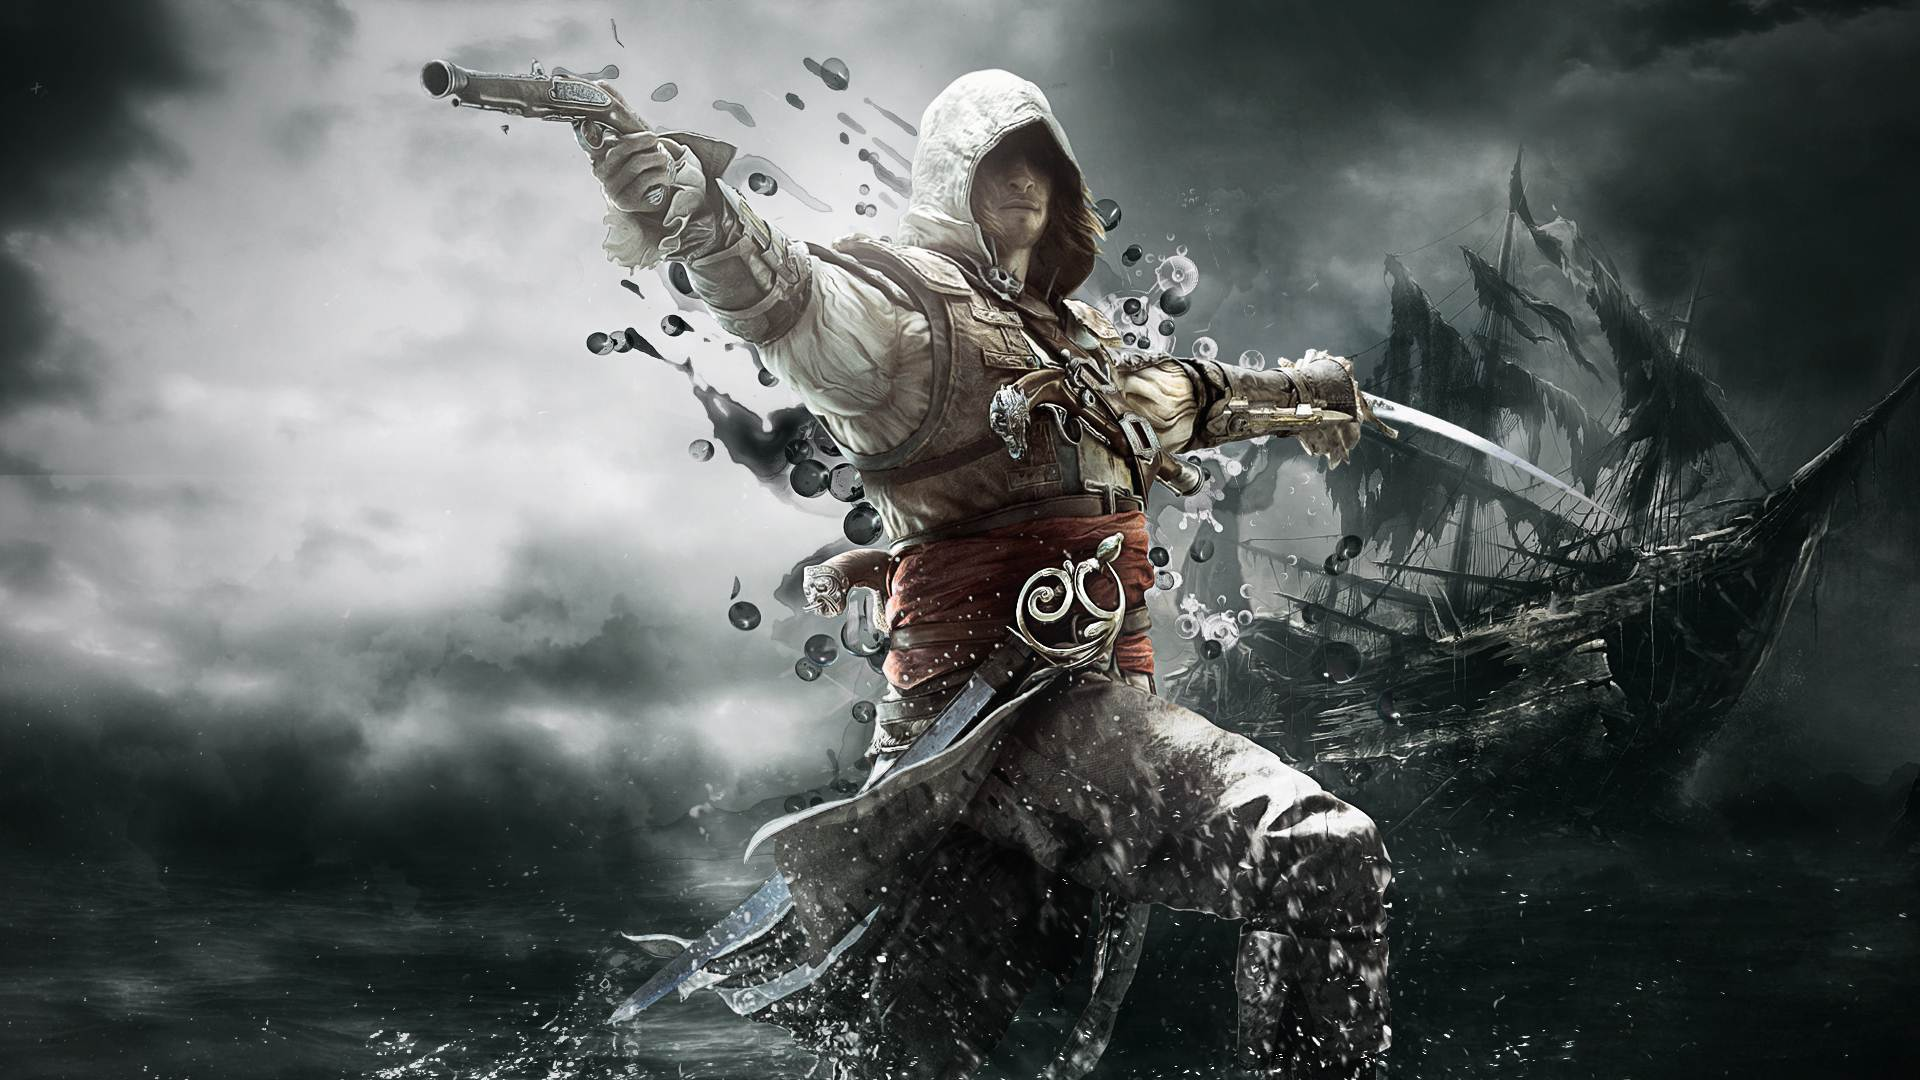 Assassins Creed 4 Black Flag Wallpapers en 1080P HD 1920x1080